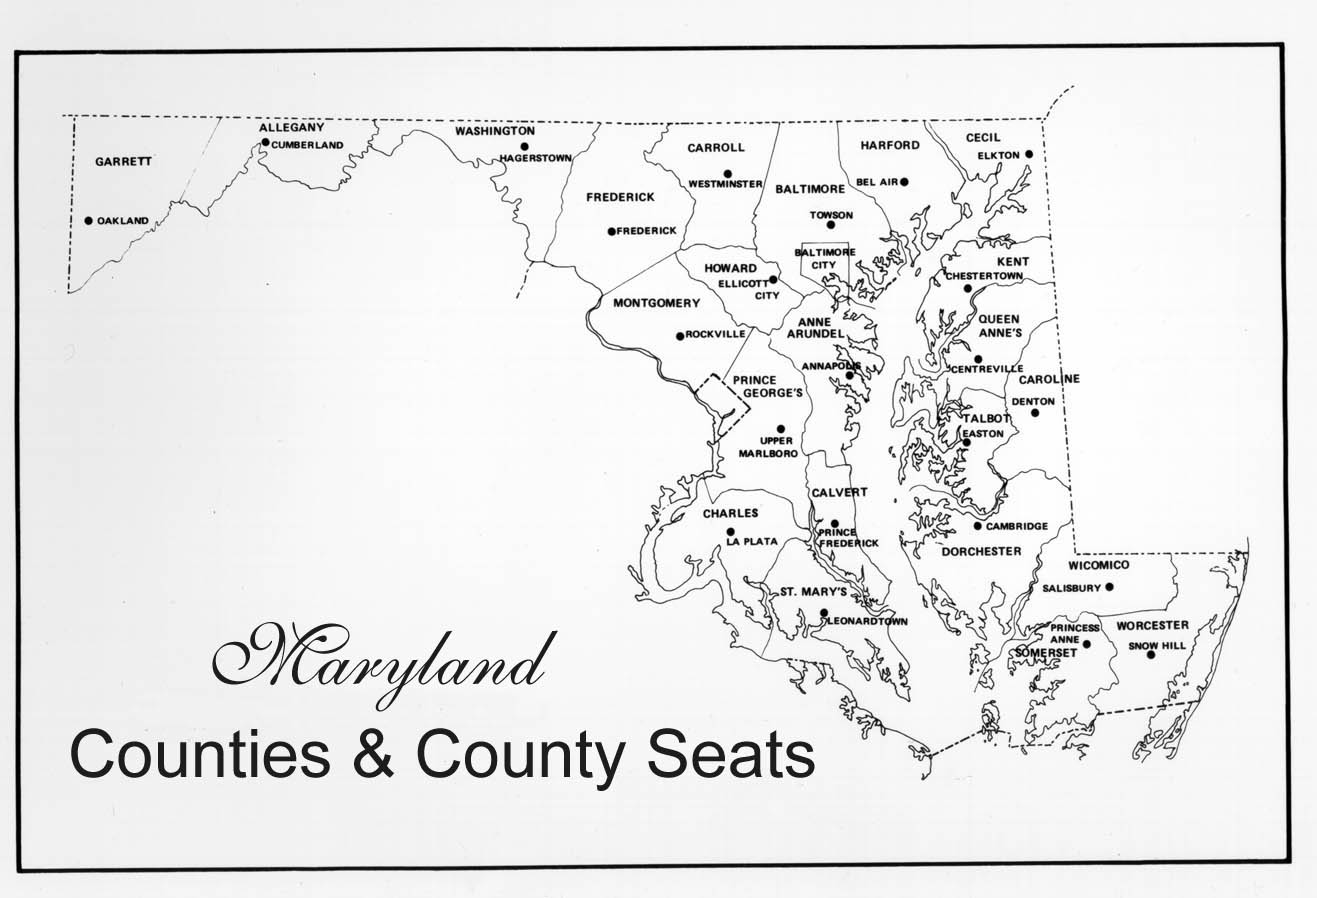 Maryland Counties Map Counties County Seats